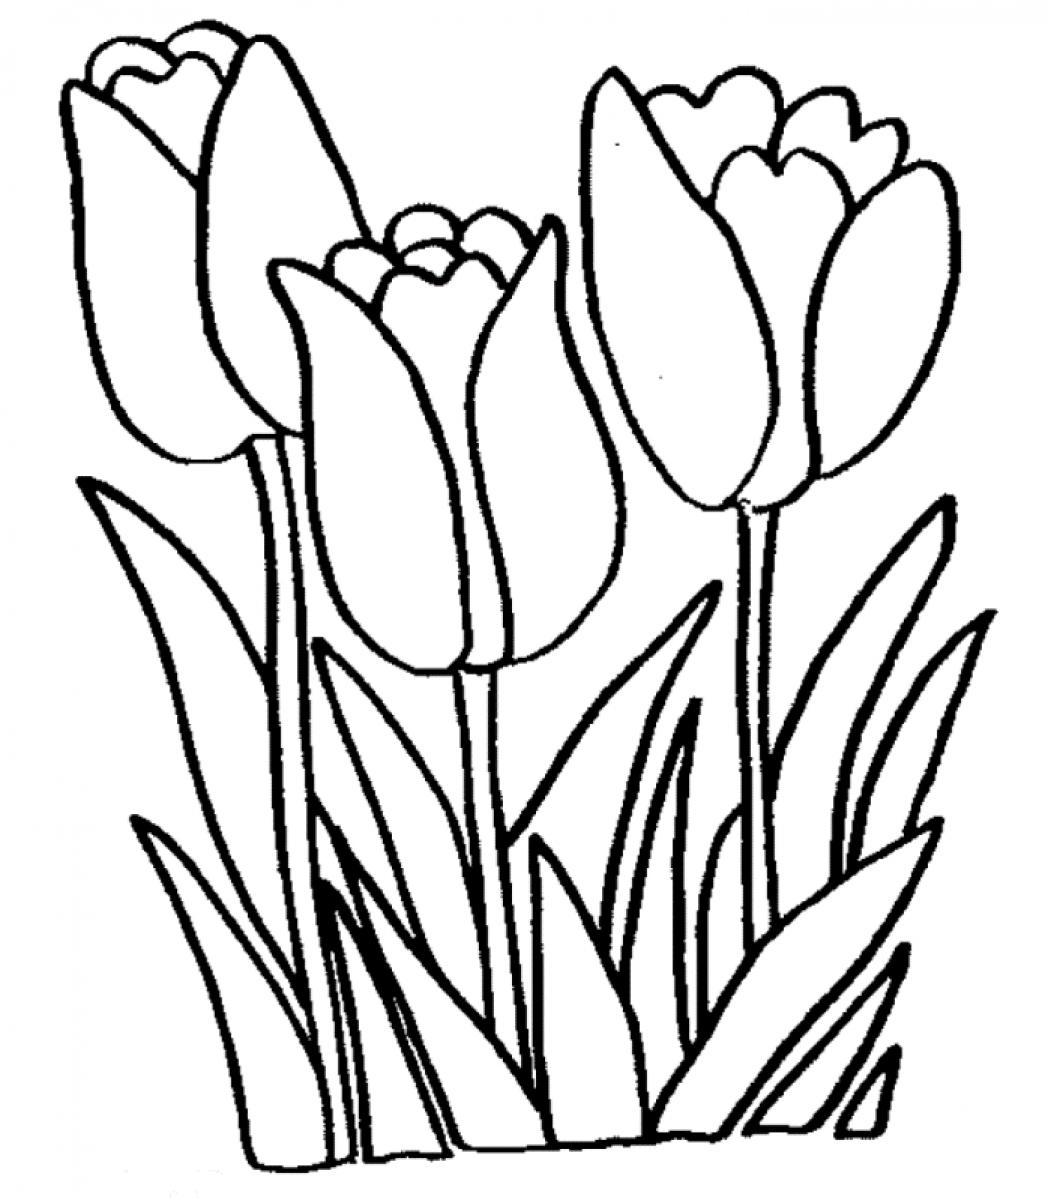 Colouring in sheets of flowers - Tulip Coloring Pages Free Printable